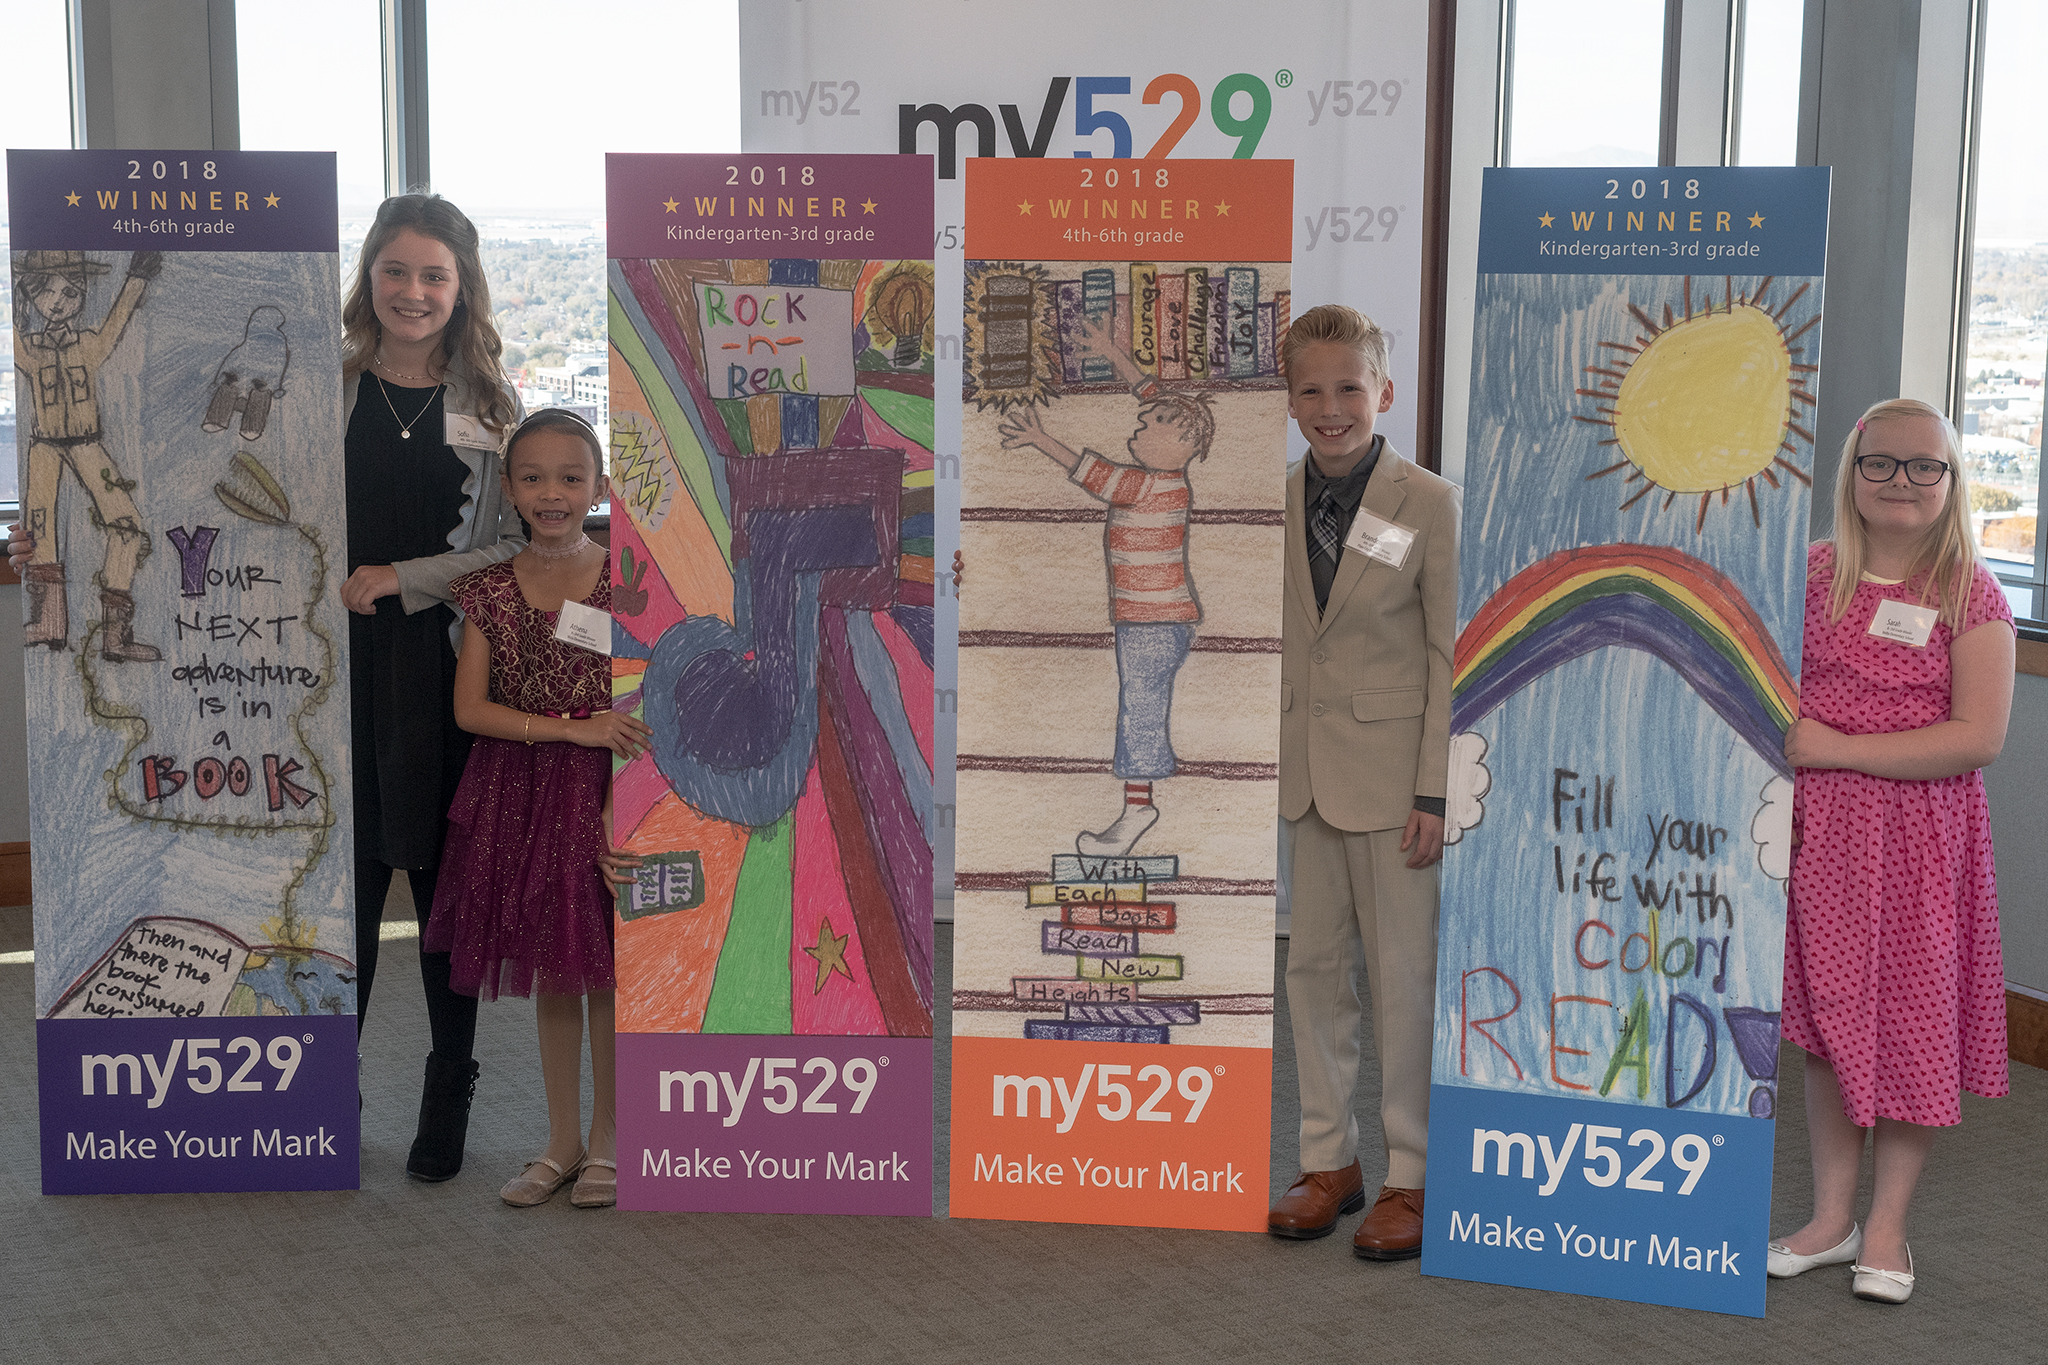 Celebration Of Signs And Marks Human >> Make Your Mark 2018 Winners My529 Org